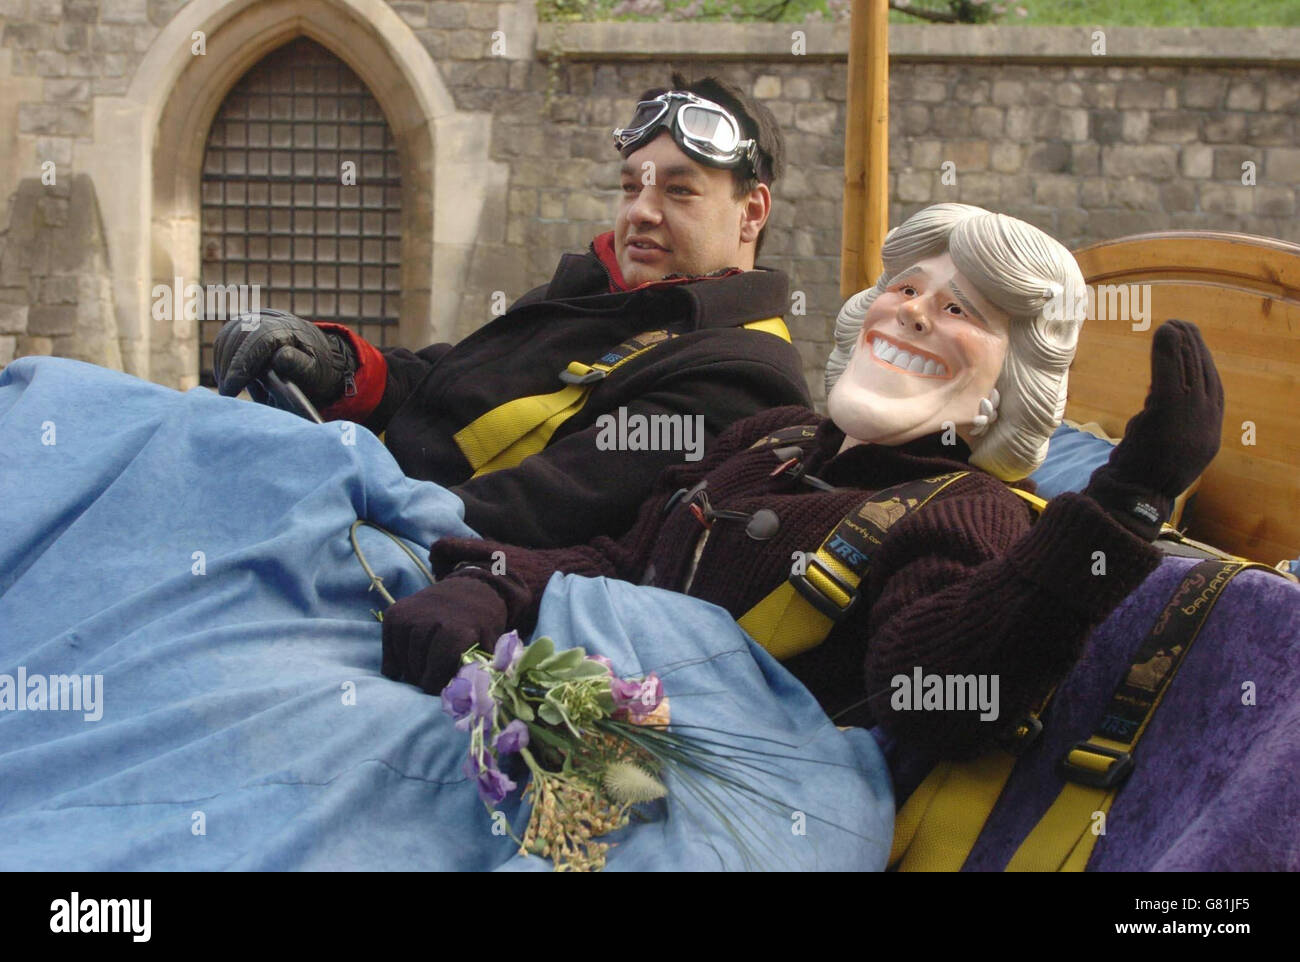 Royal Wedding - Prince Charles and Camilla Parker Bowles - Windsor Castle - Stock Image